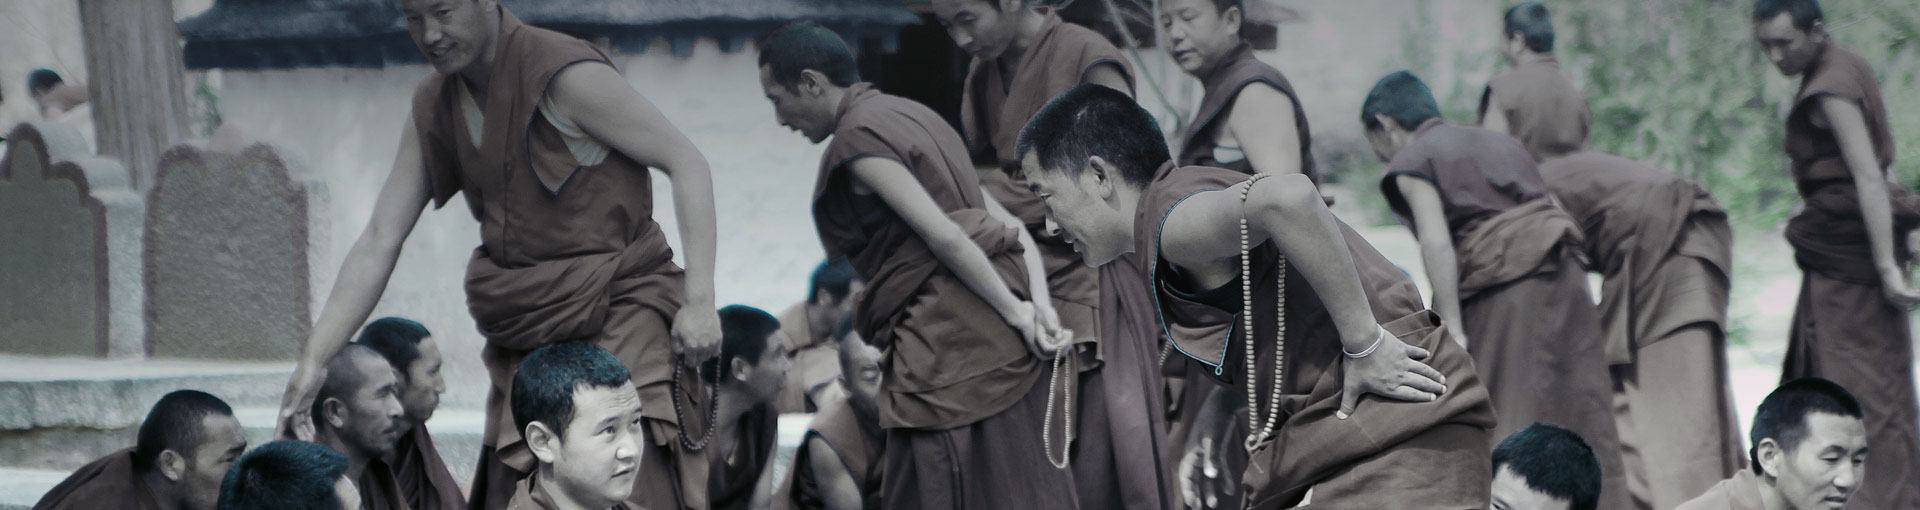 Tibet monks element film